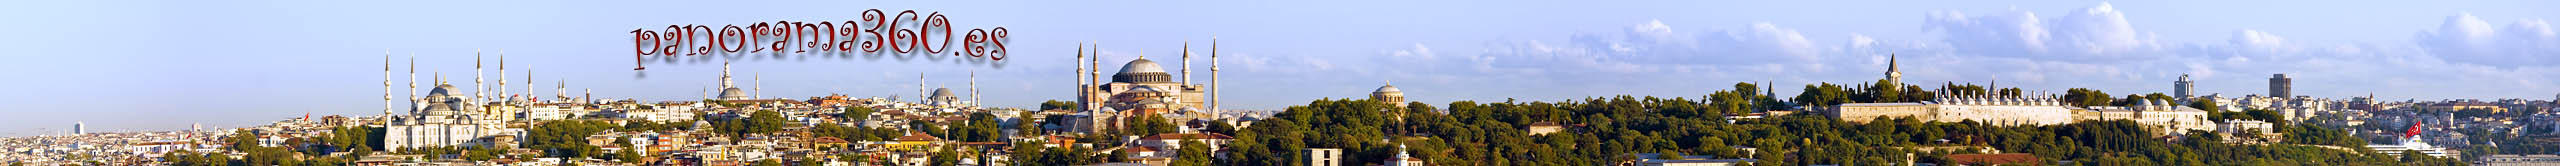 Historical areas of Istambul were included in the World Heritage list